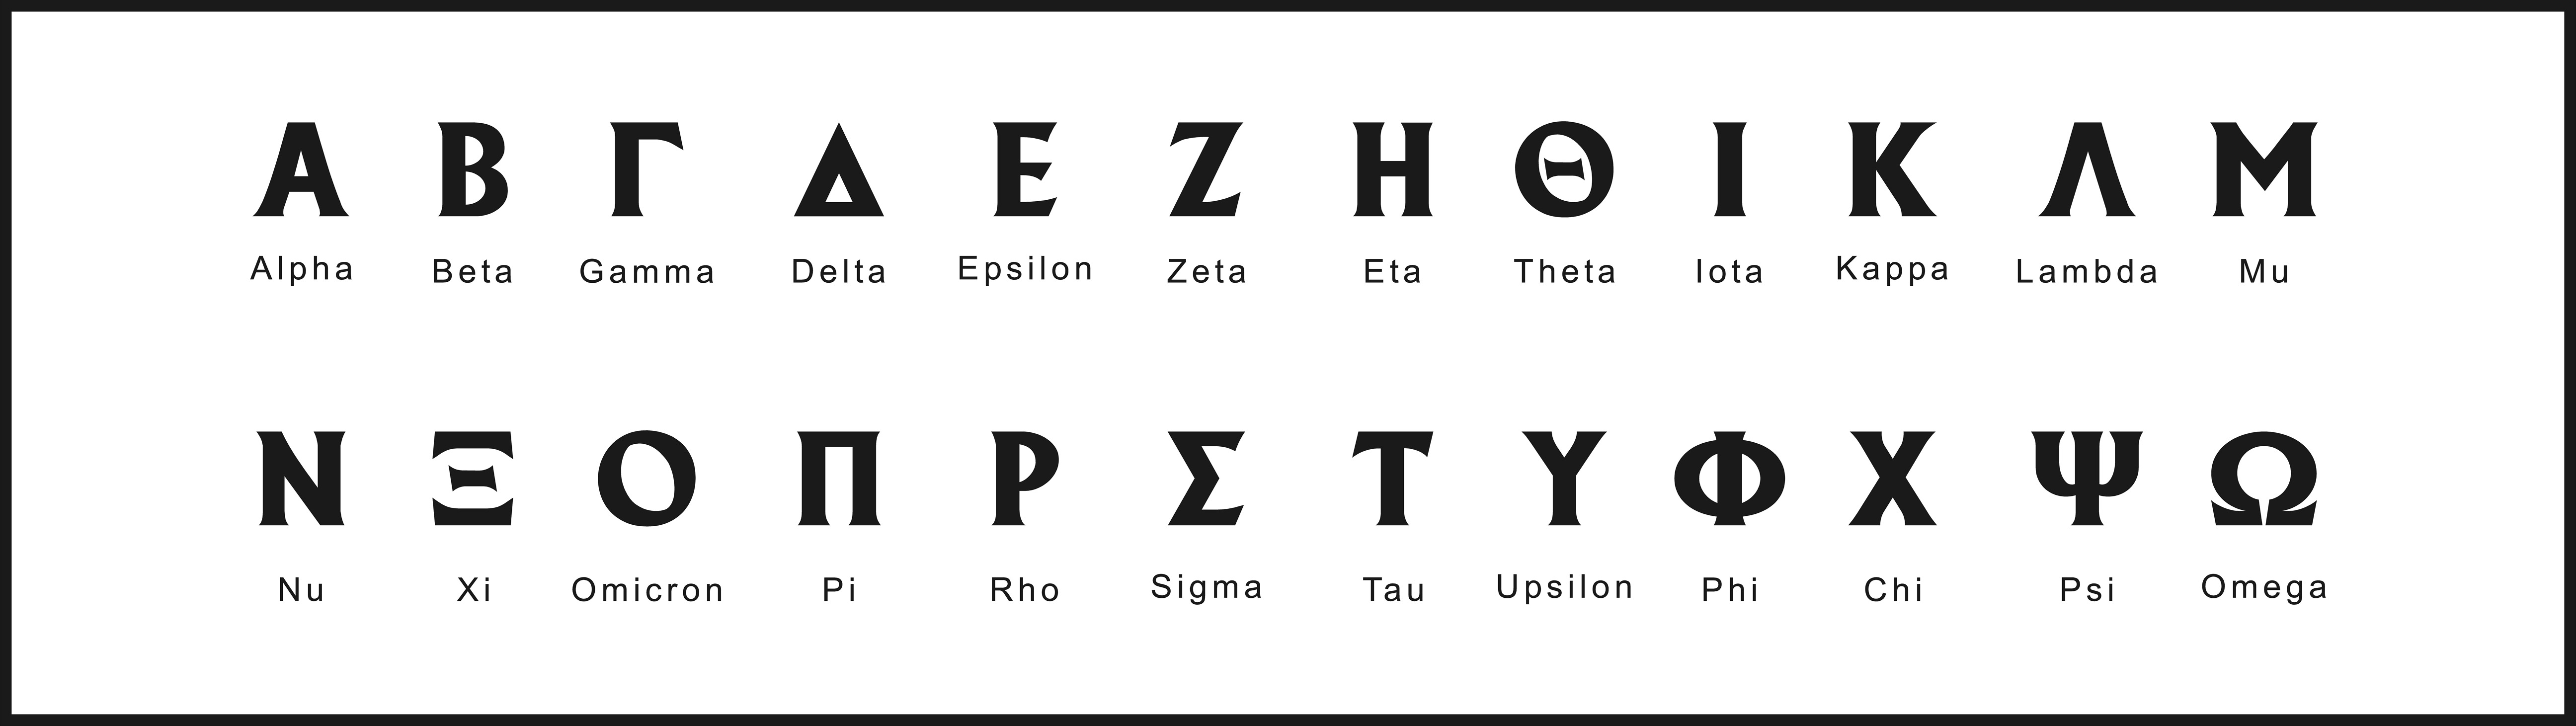 How Many Letter In The Alphabet